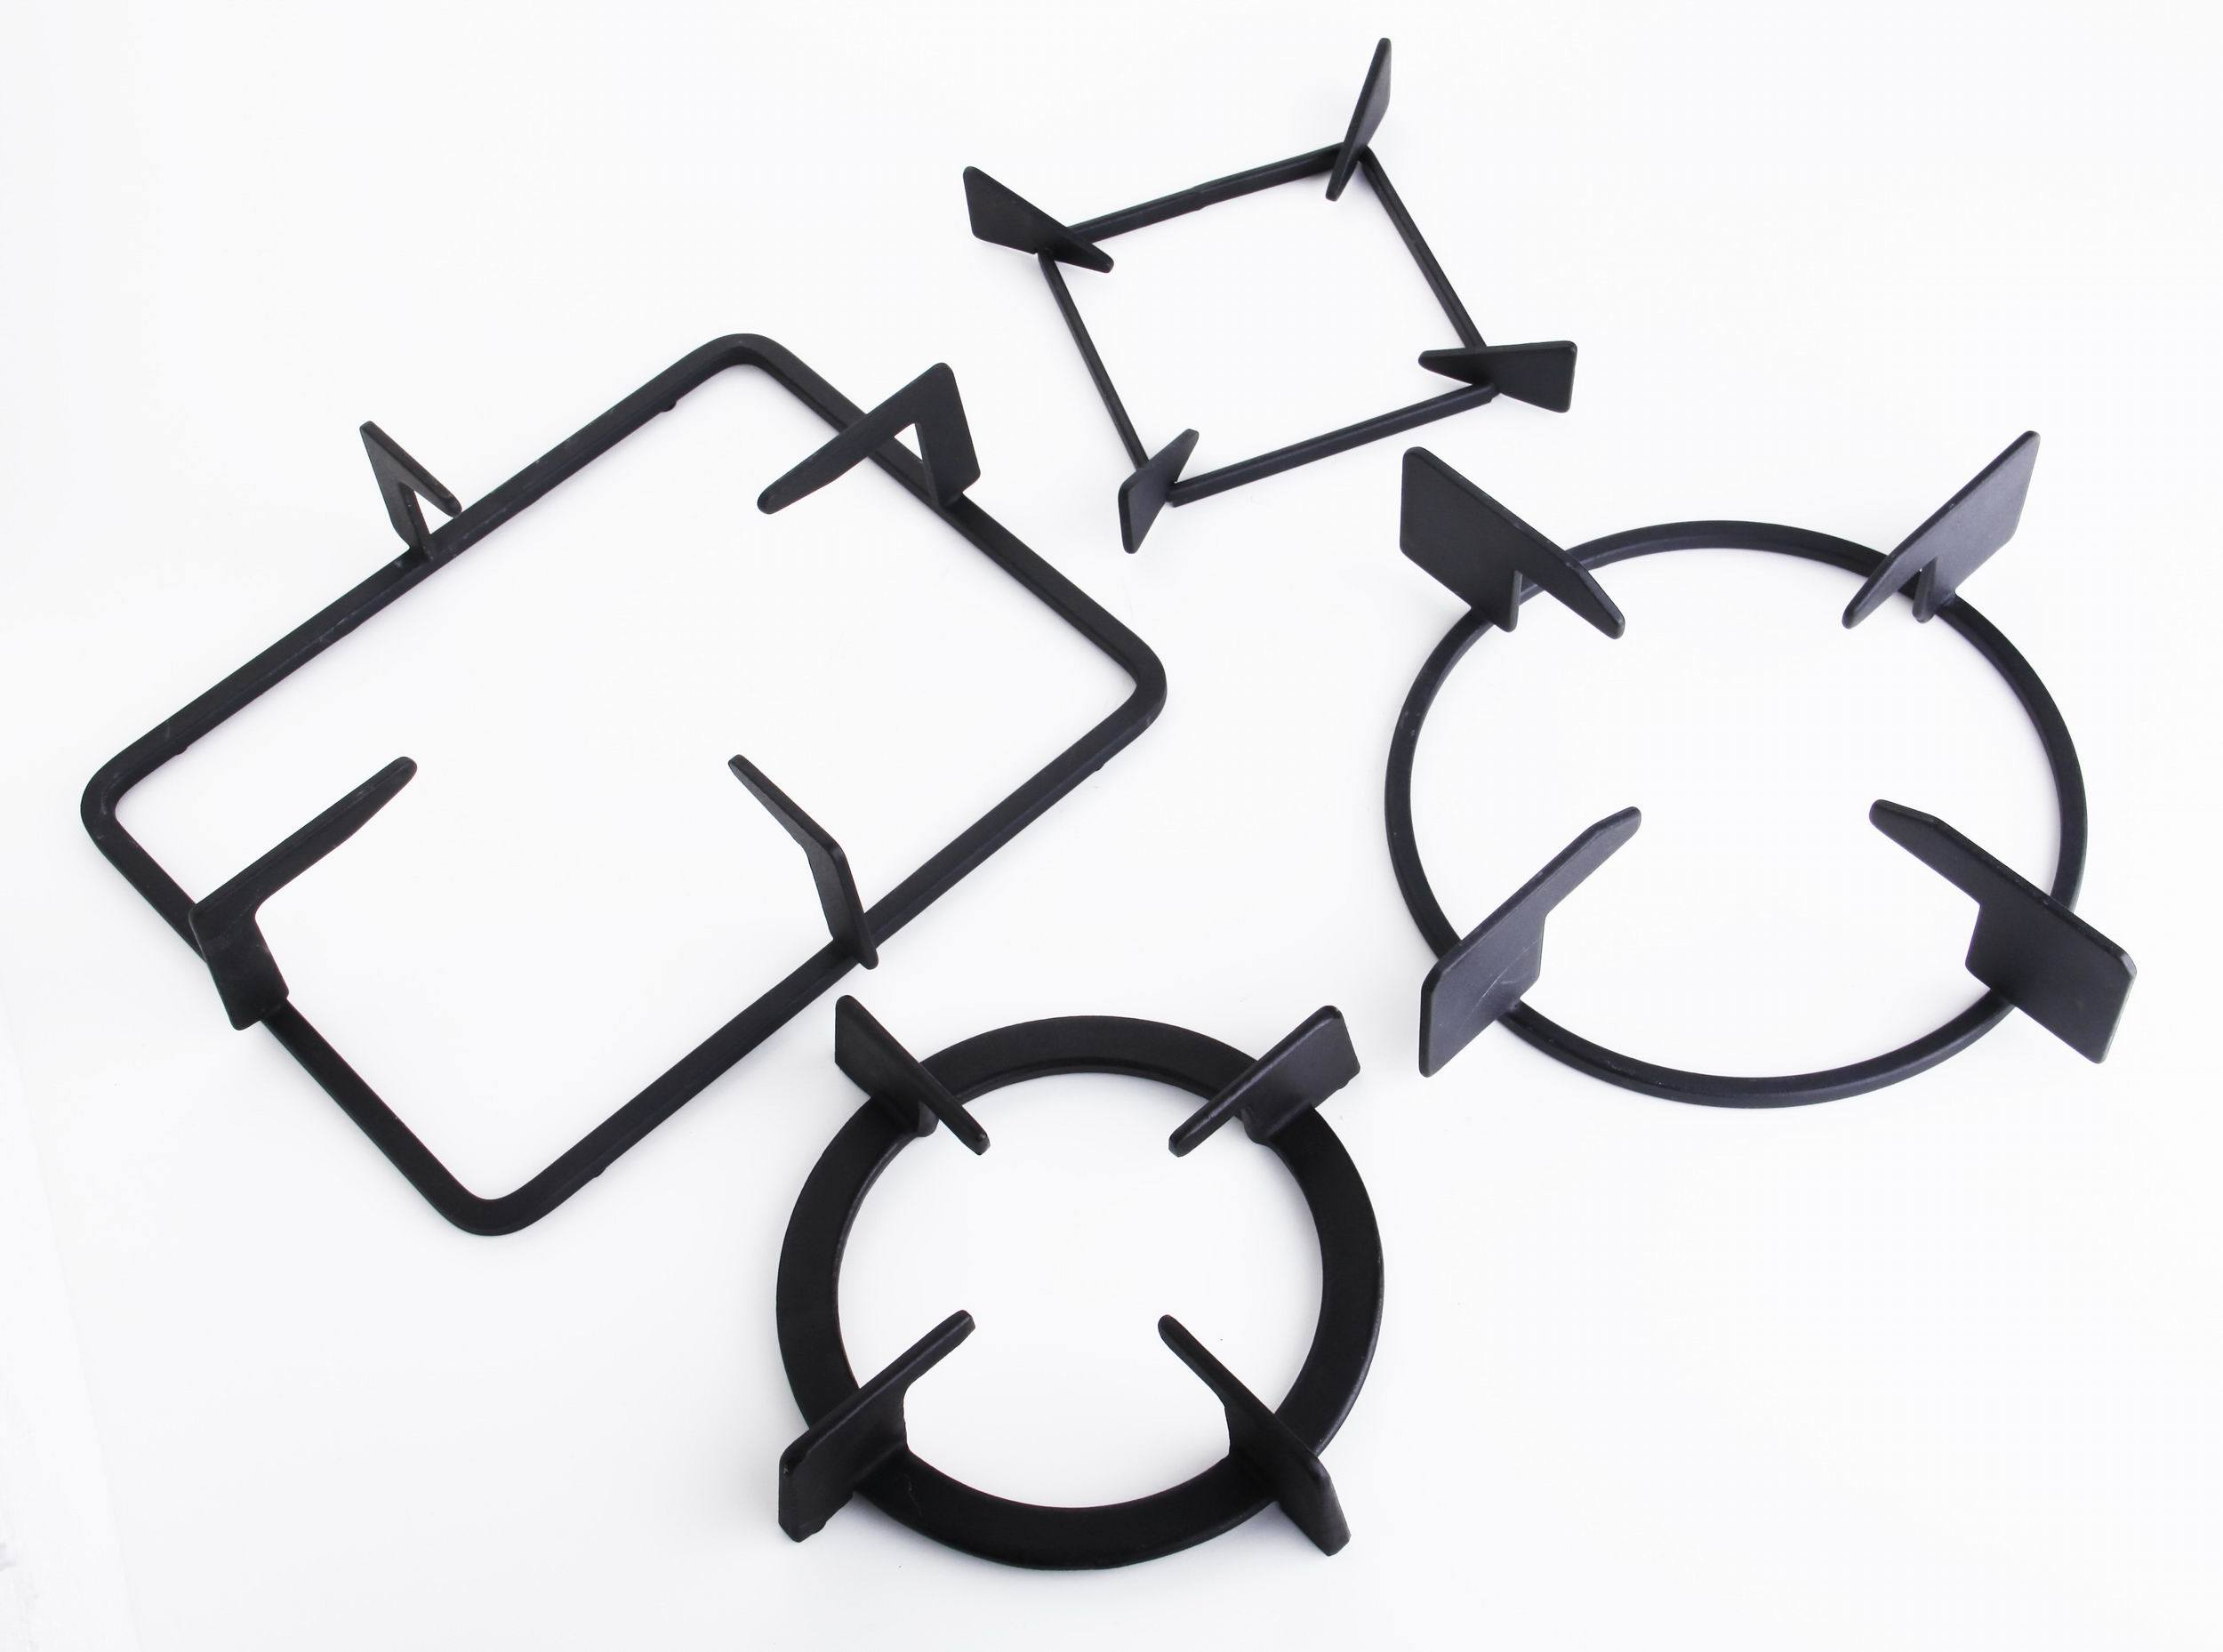 China Enamelled Cast Iron Grid Gas Cooker Grid Oven Parts Stove